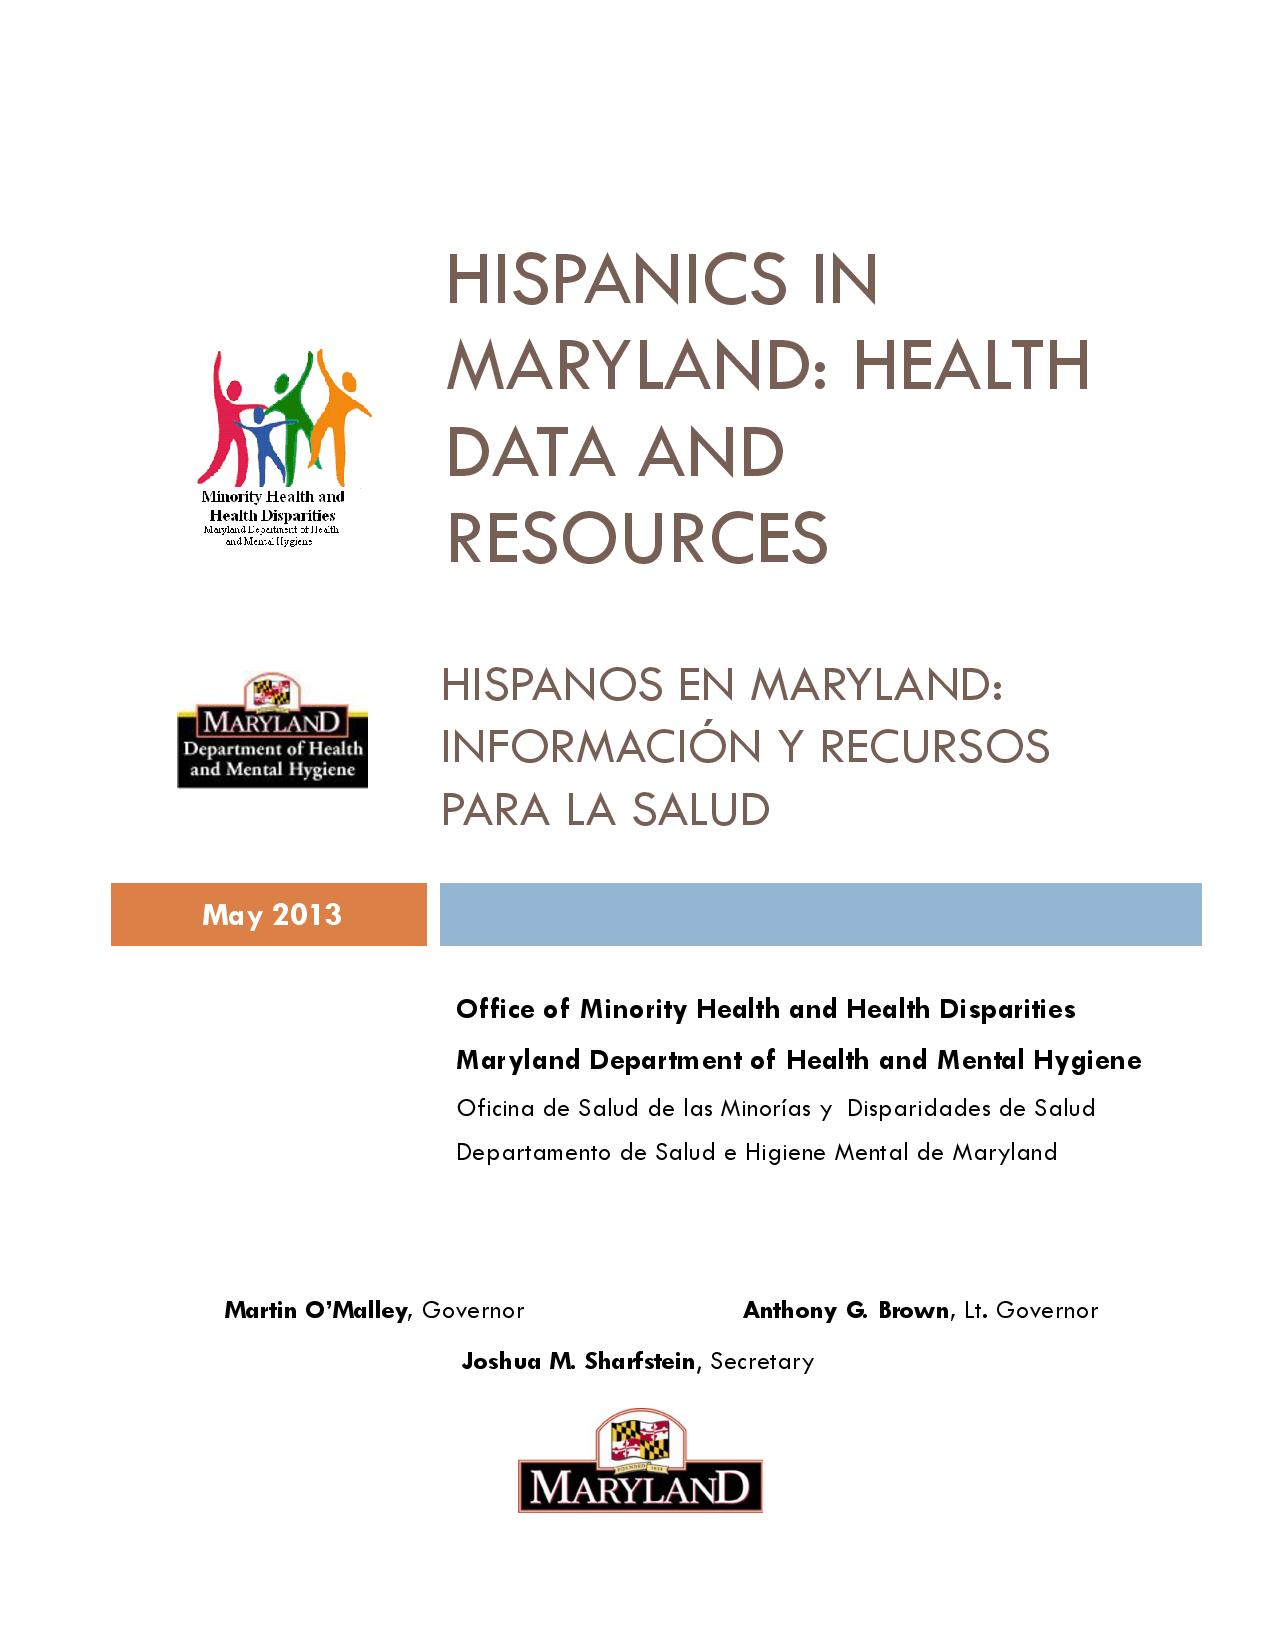 Maryland-Hispanic-Health-Disparity-Data-page-001.jpg